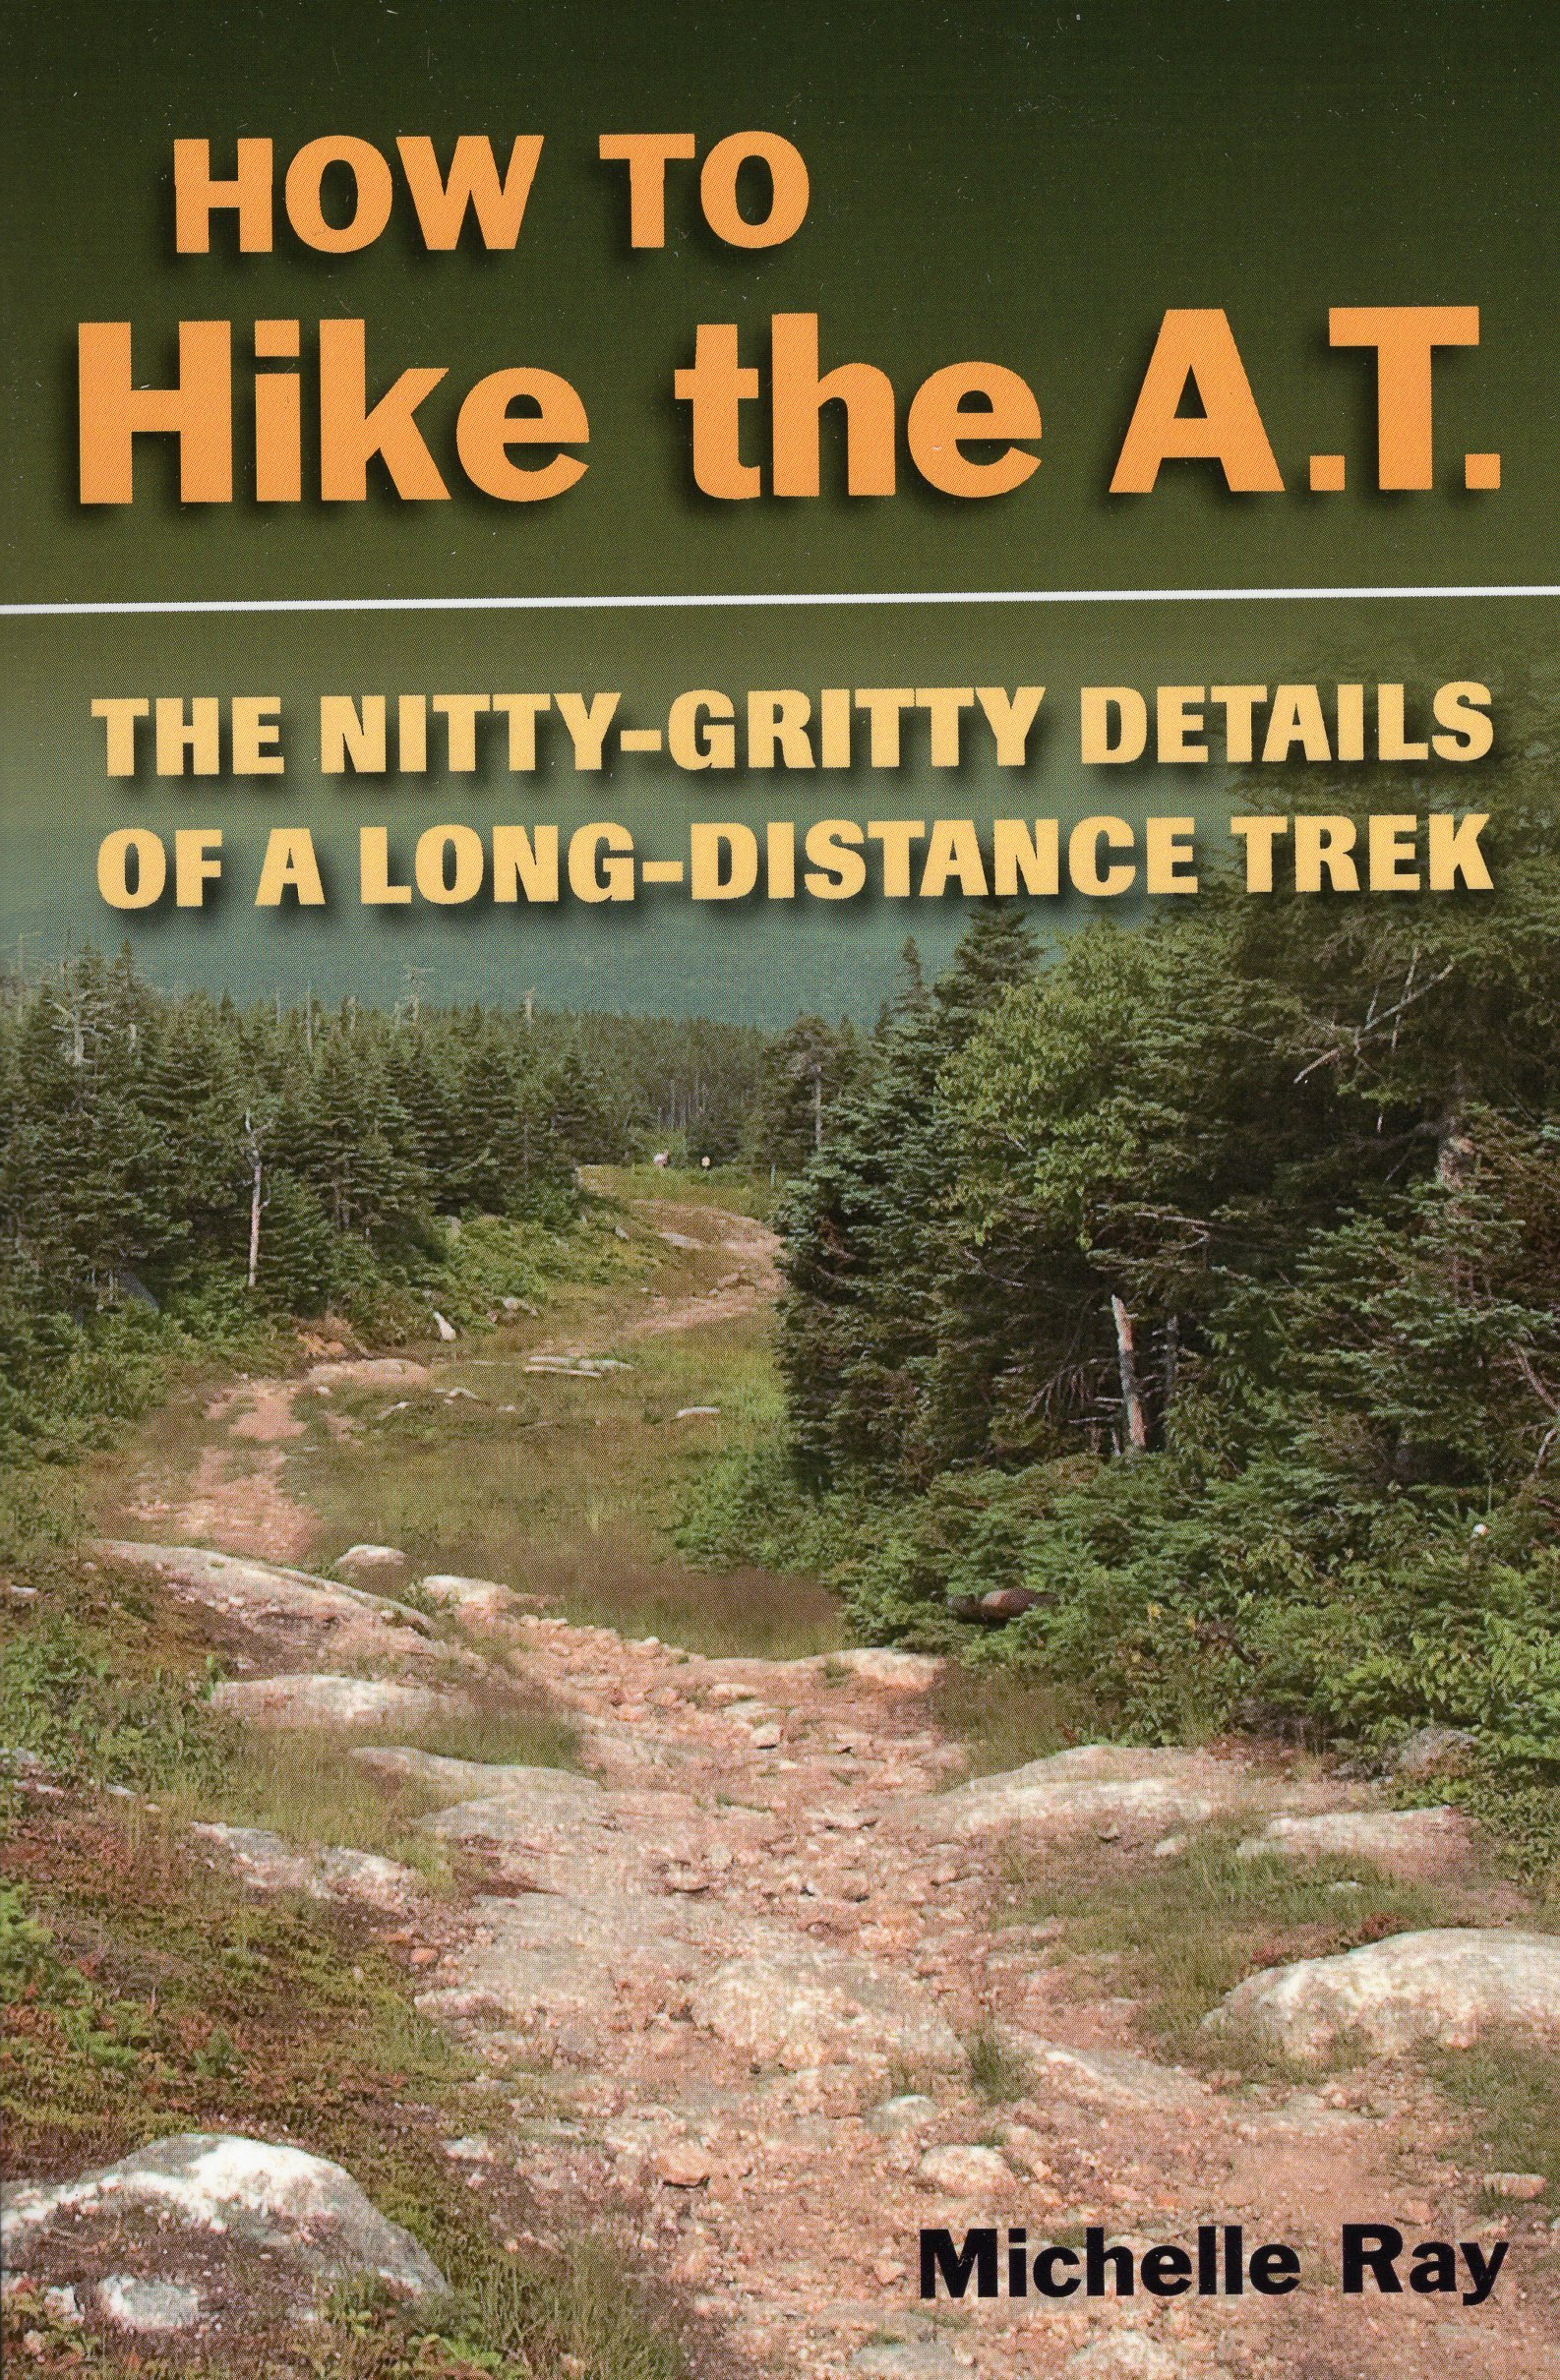 Image result for how to hike the a.t. michelle ray